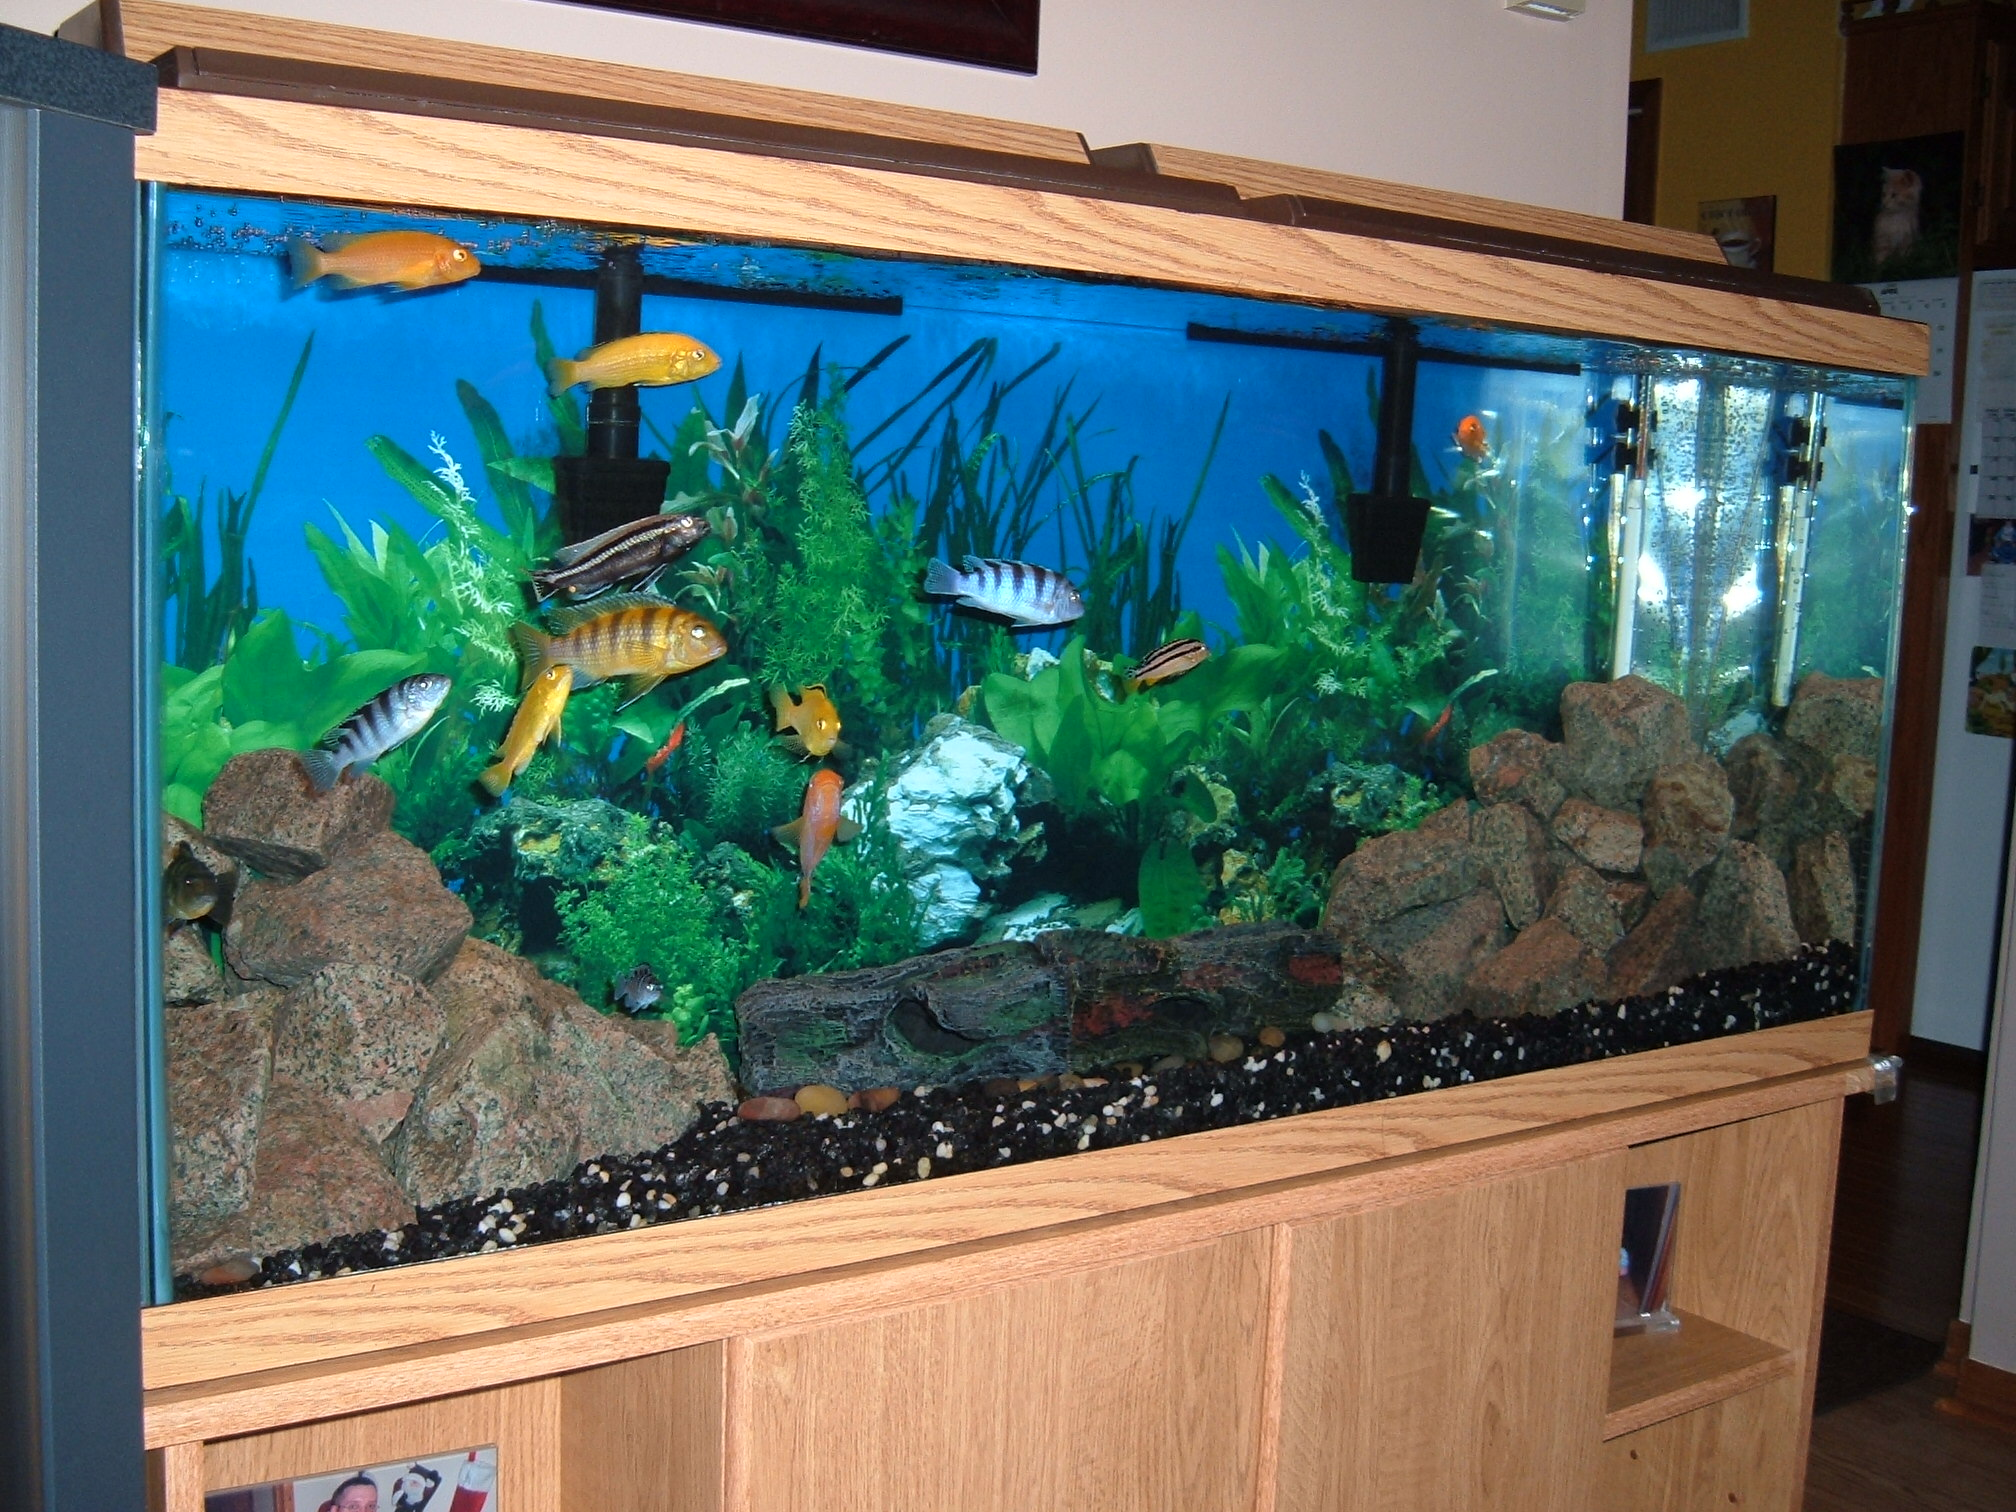 55 gallon fish tank jewel cichlid tank for 55 gallon aquarium decoration ideas